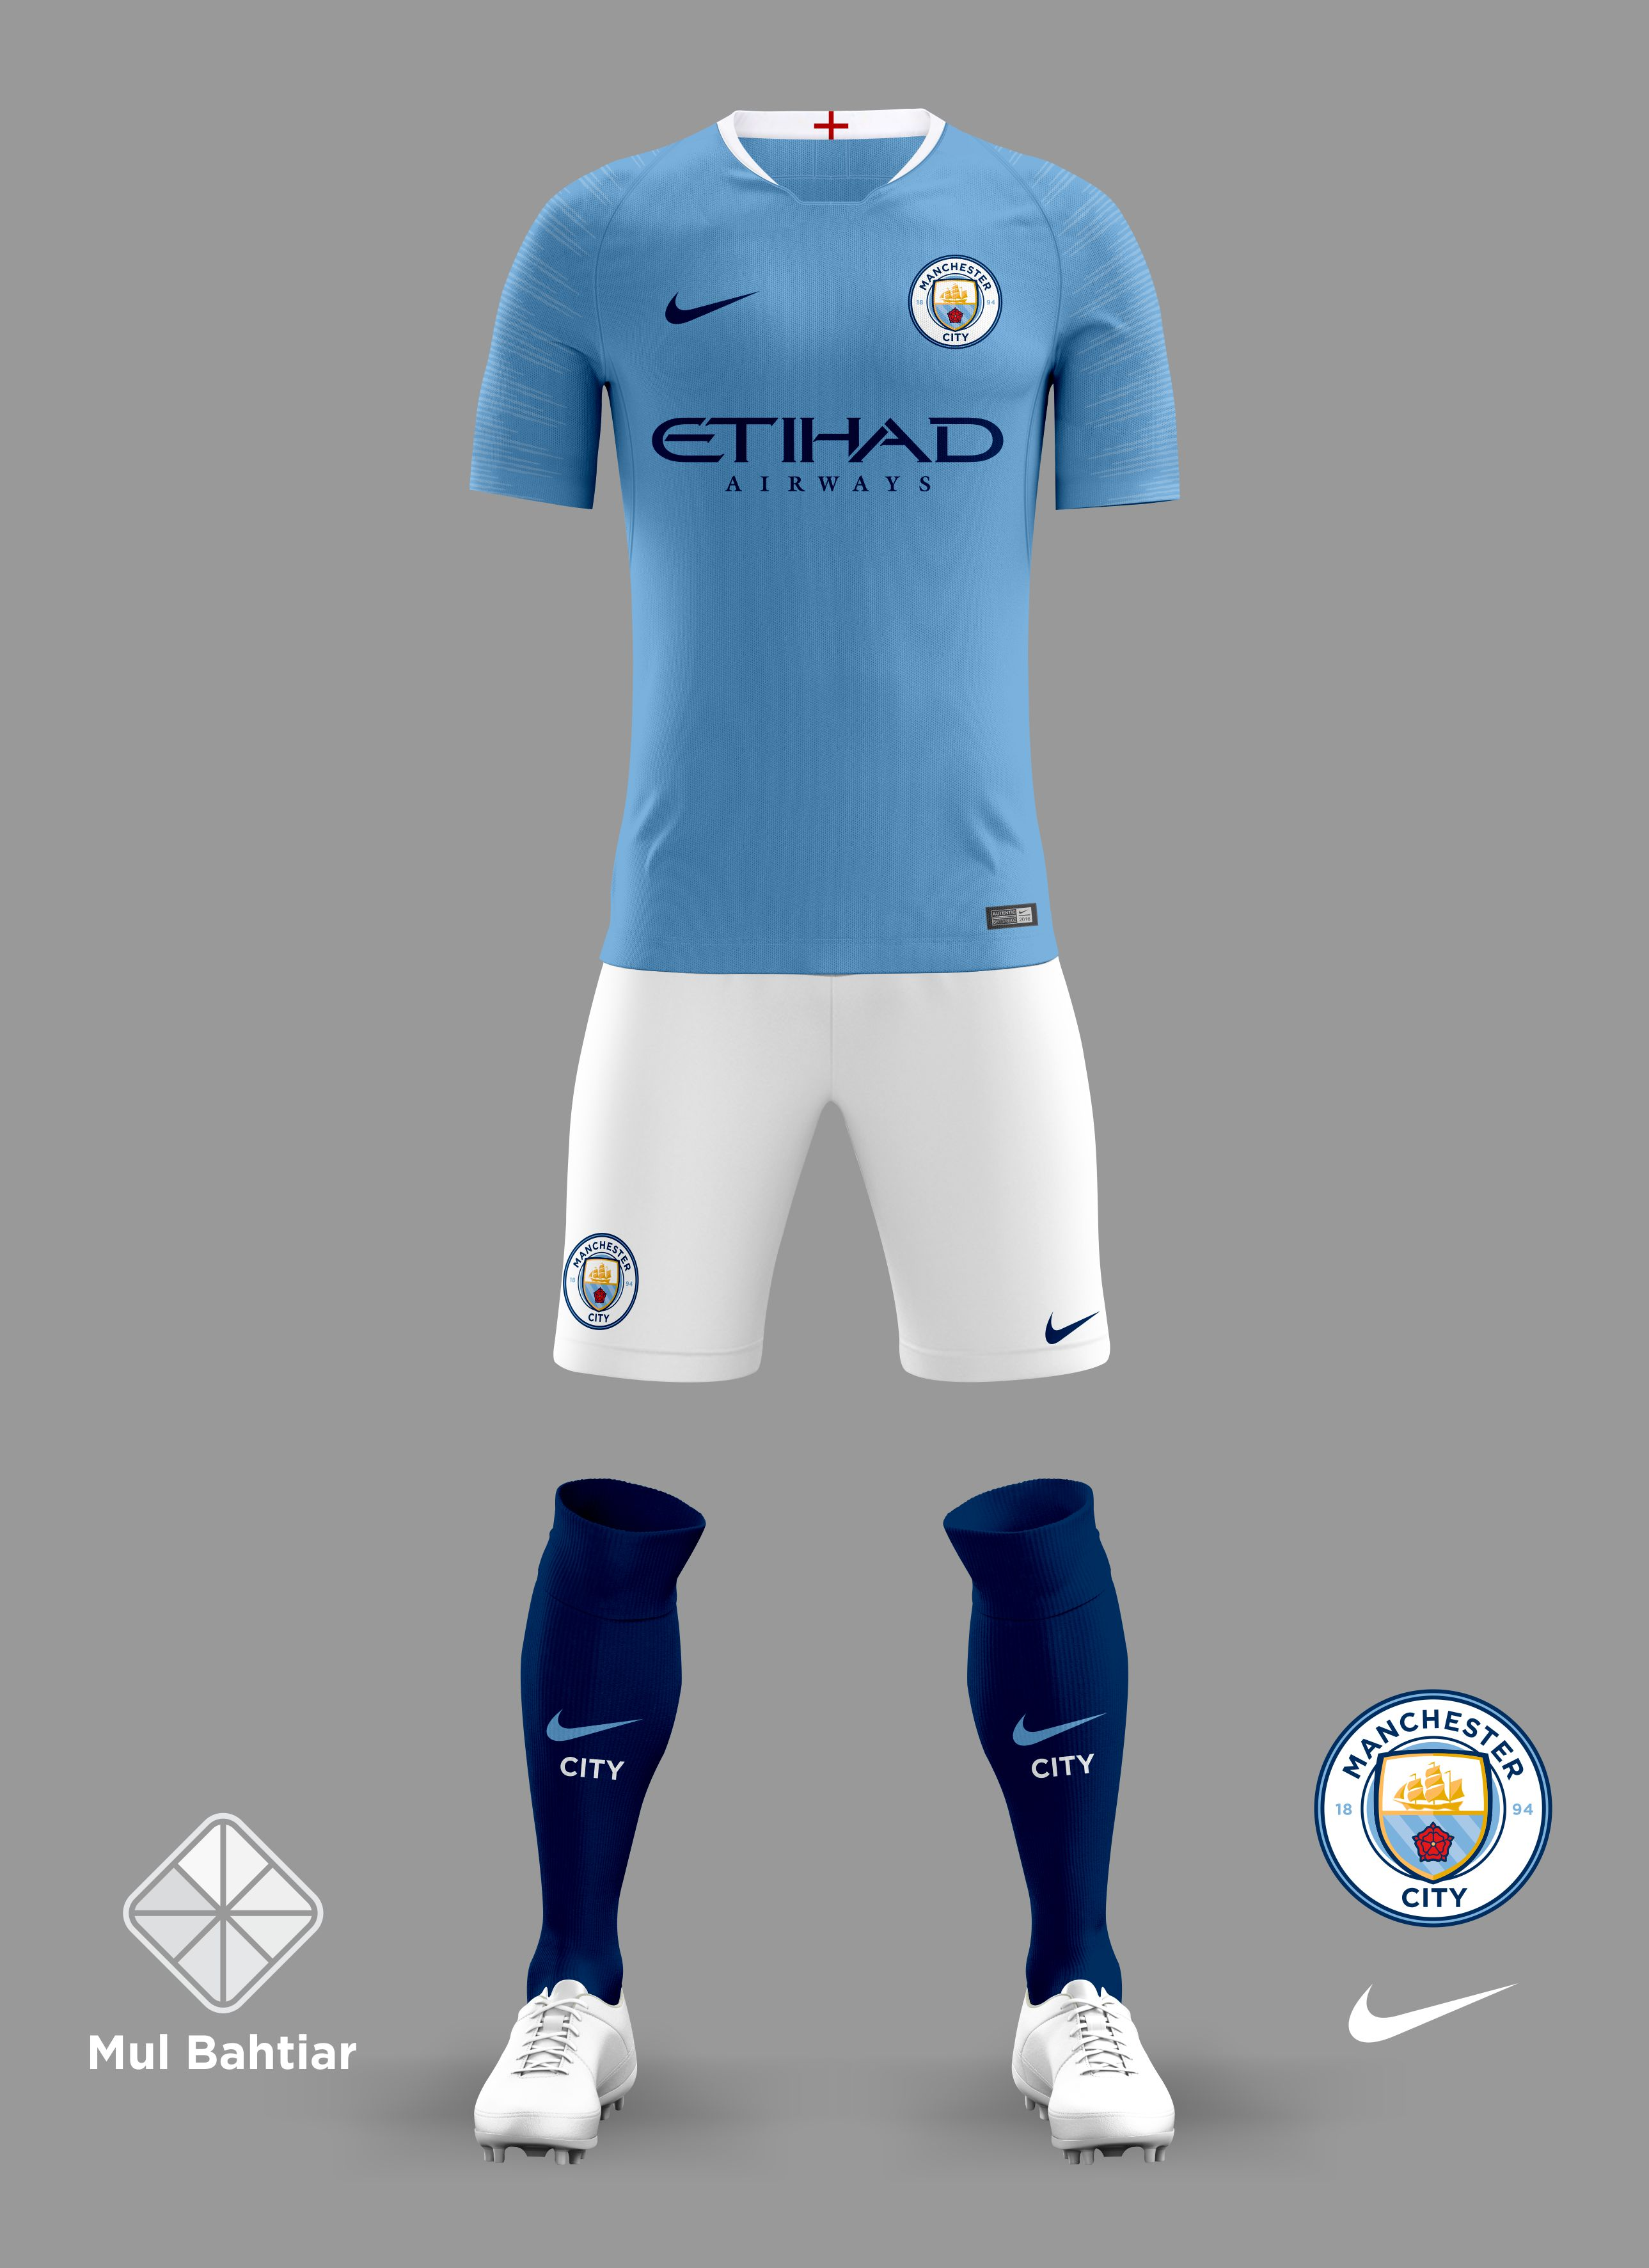 separation shoes 7f344 63f60 Manchester City 2018/2019 Home Jersey